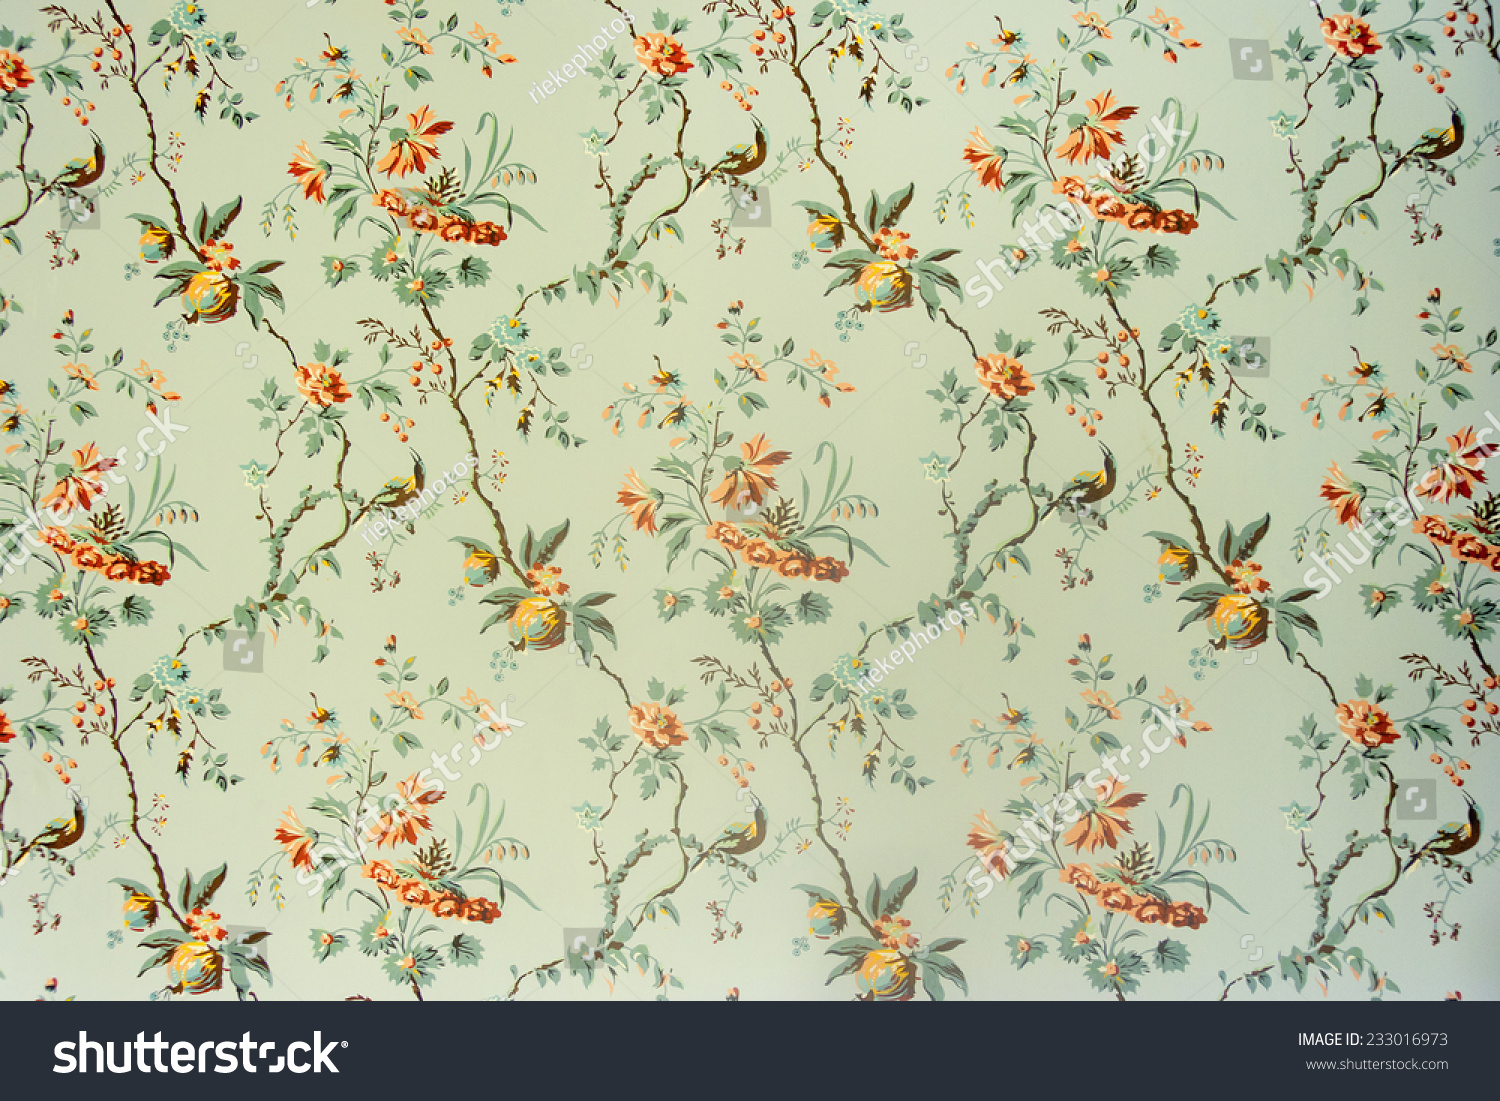 Vintage wallpaper - Floral pattern of 18th century